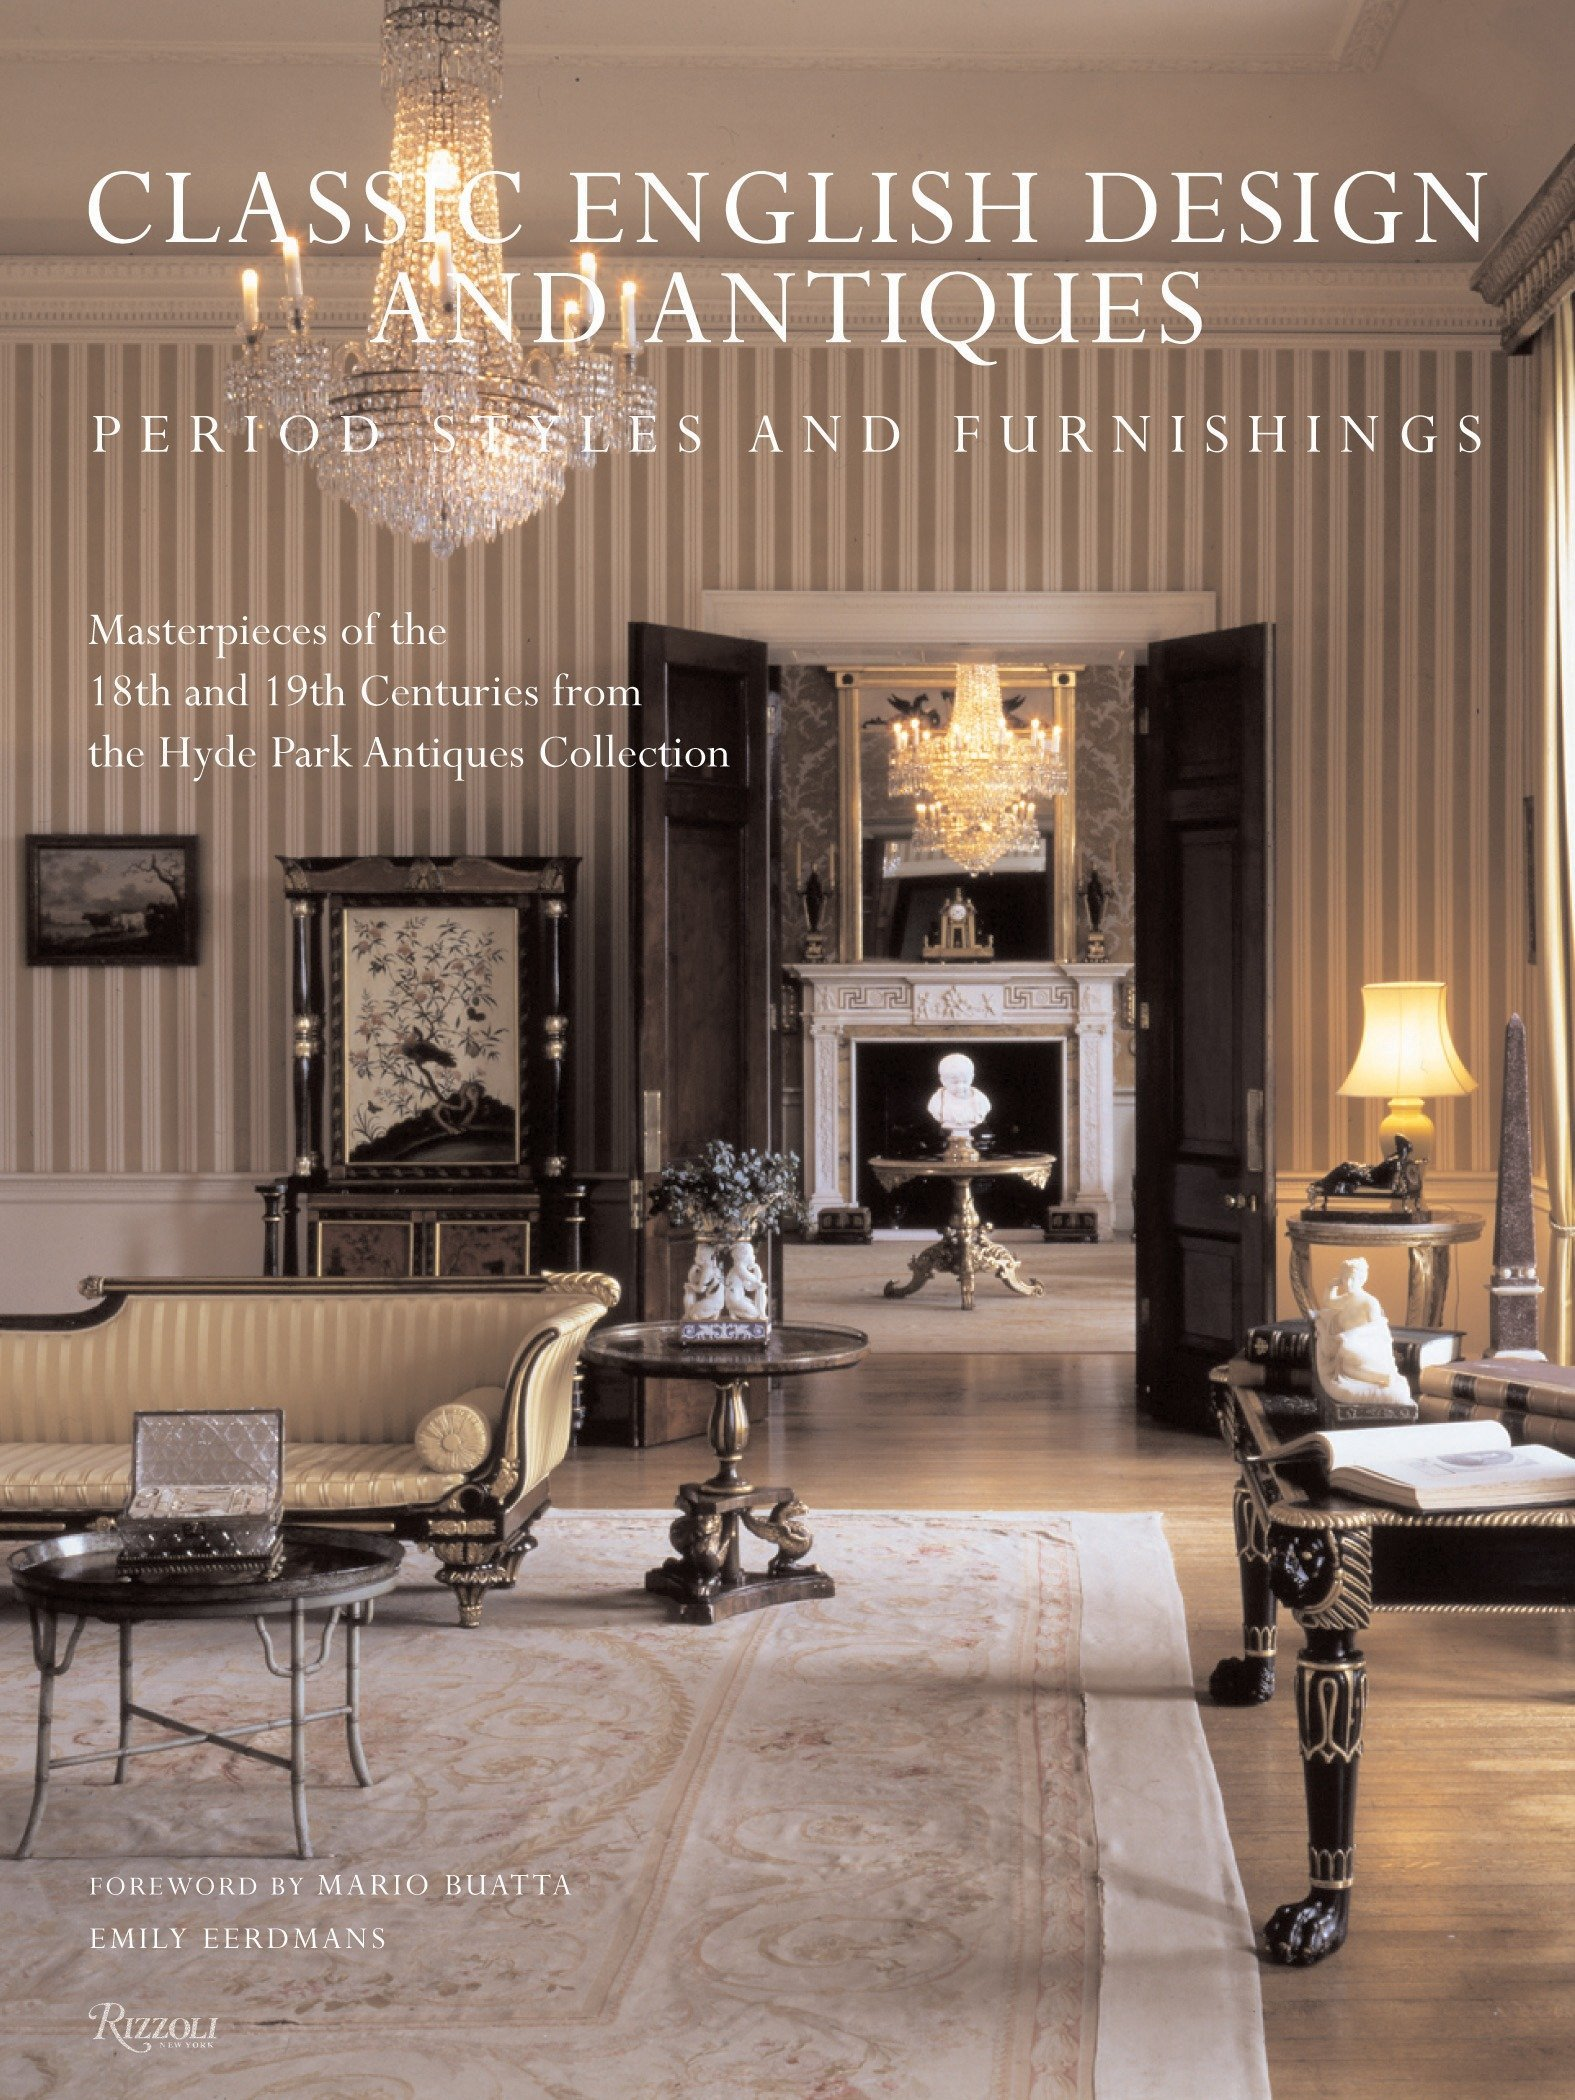 Classic English Design And Antiques Period Styles And Furniture Hyde Park Antiques Collection Eerdmans Emily Karr Rachel Buatta Mario 9780847828630 Amazon Com Books